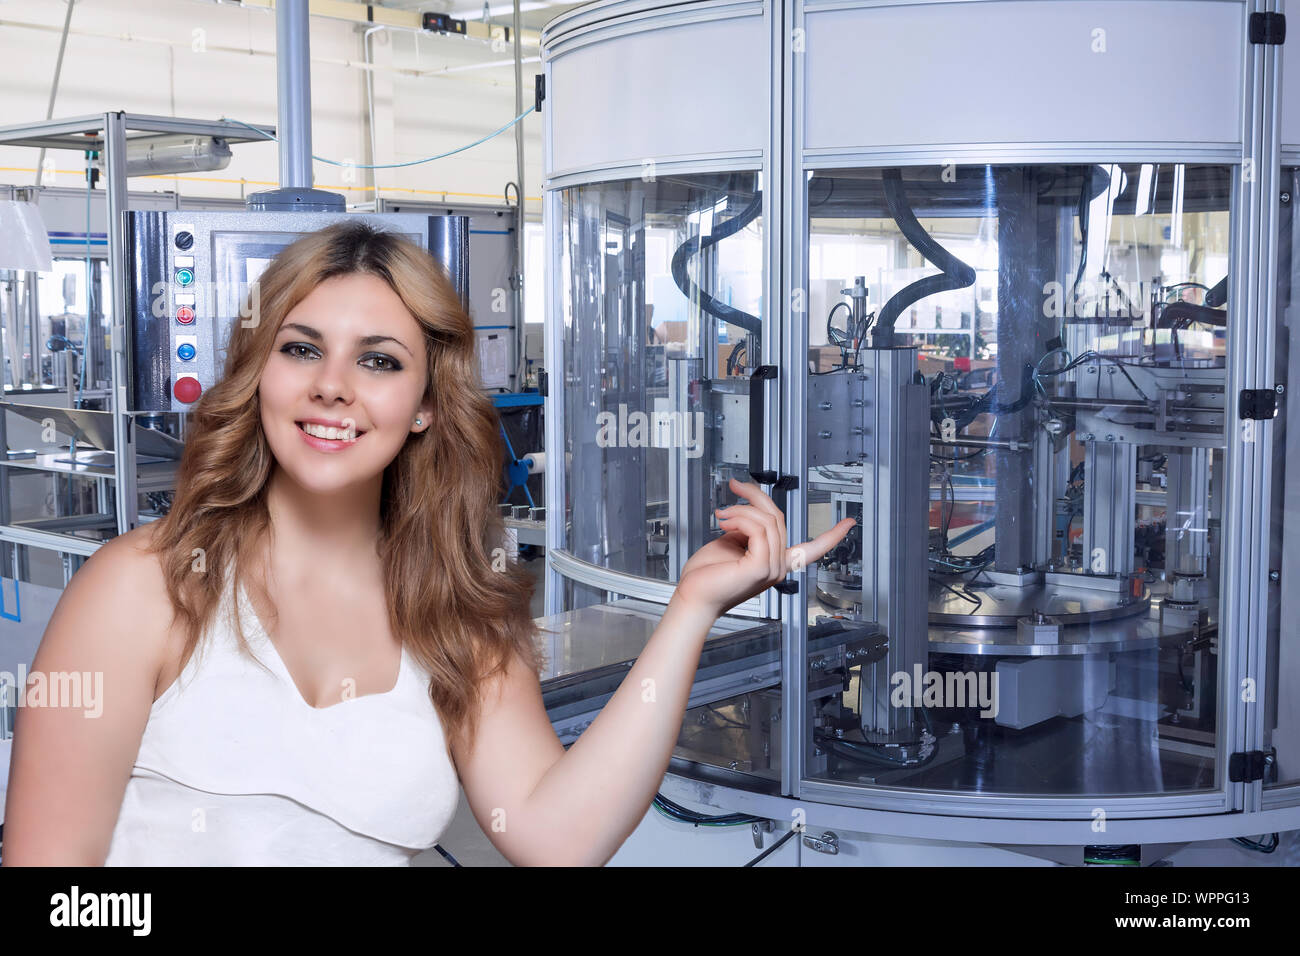 Smiling long haired young woman is showing automatic production line in the interior of an industrial plant. All potential trademarks are removed. Stock Photo